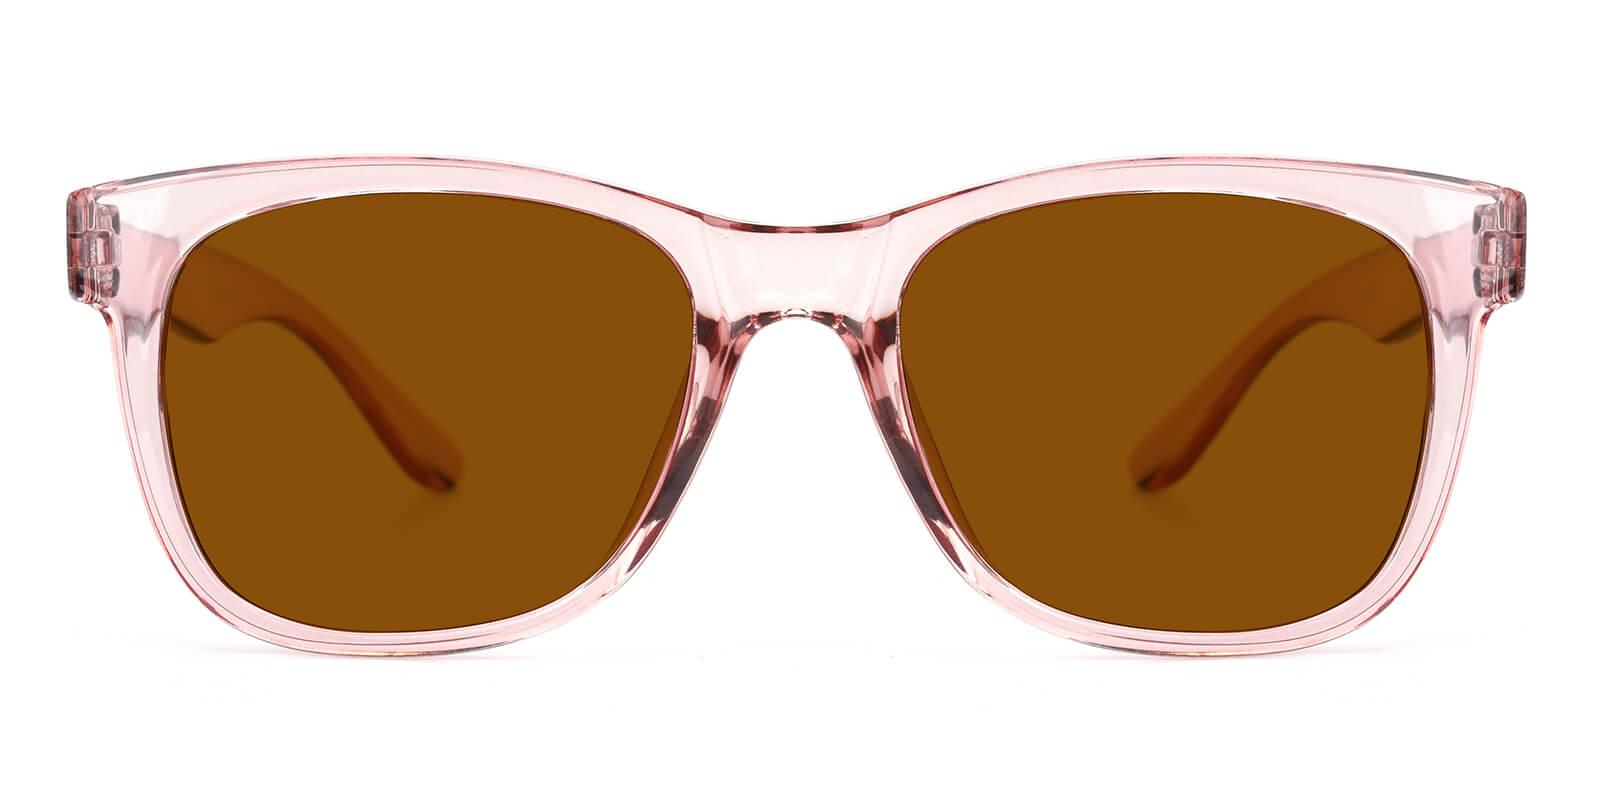 Tracly-Pink-Square / Cat-TR-Sunglasses-additional2